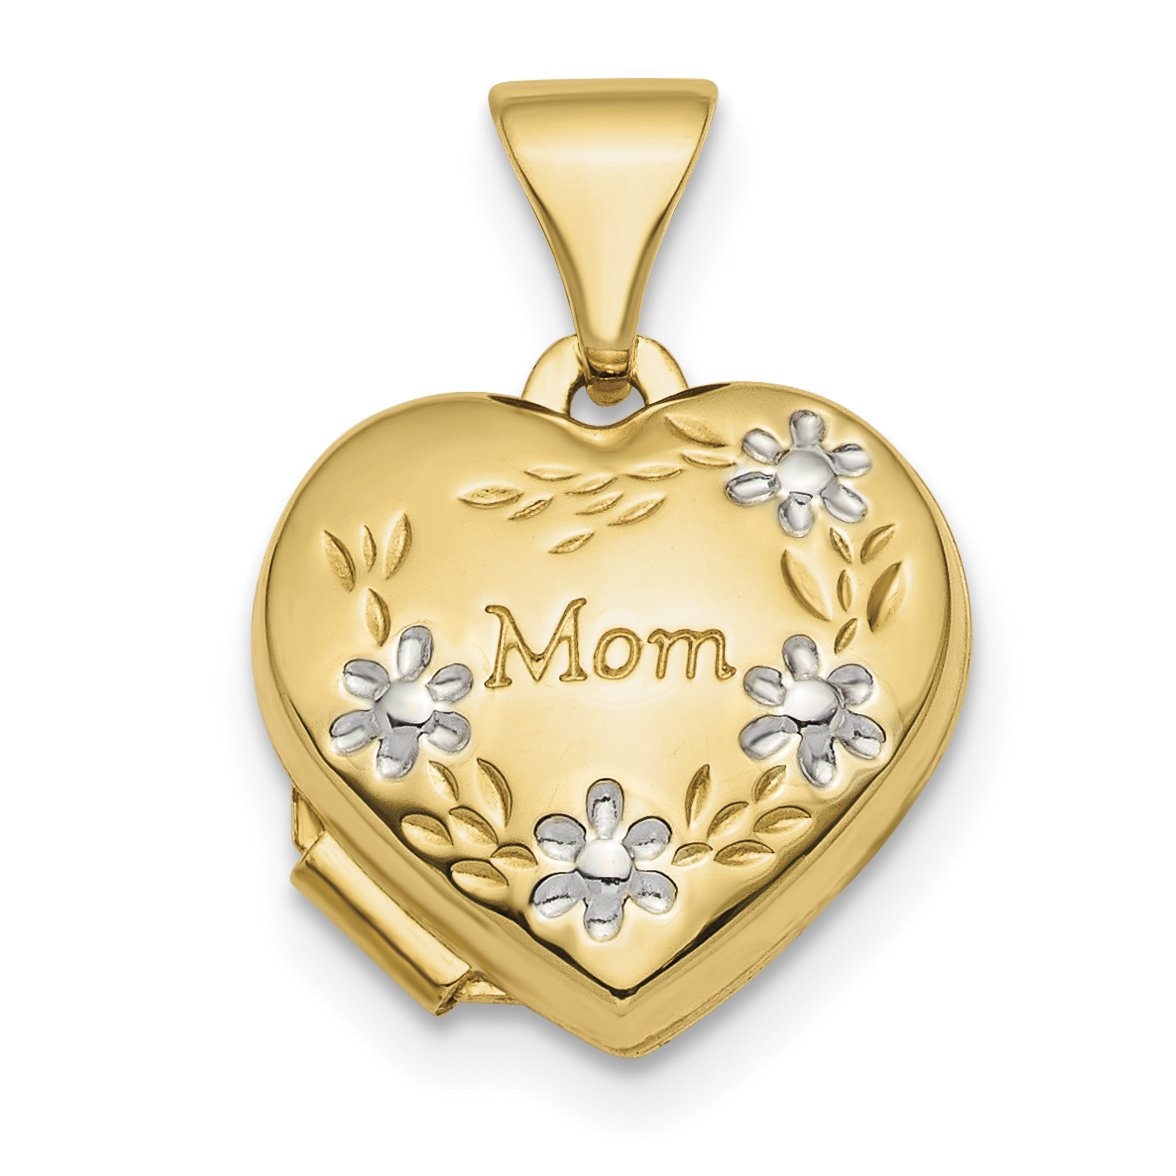 ICE CARATS 14k Yellow Gold Floral Mom Heart Photo Pendant Charm Locket Chain Necklace That Holds Pictures Mot Fine Jewelry Gift Set For Women Heart